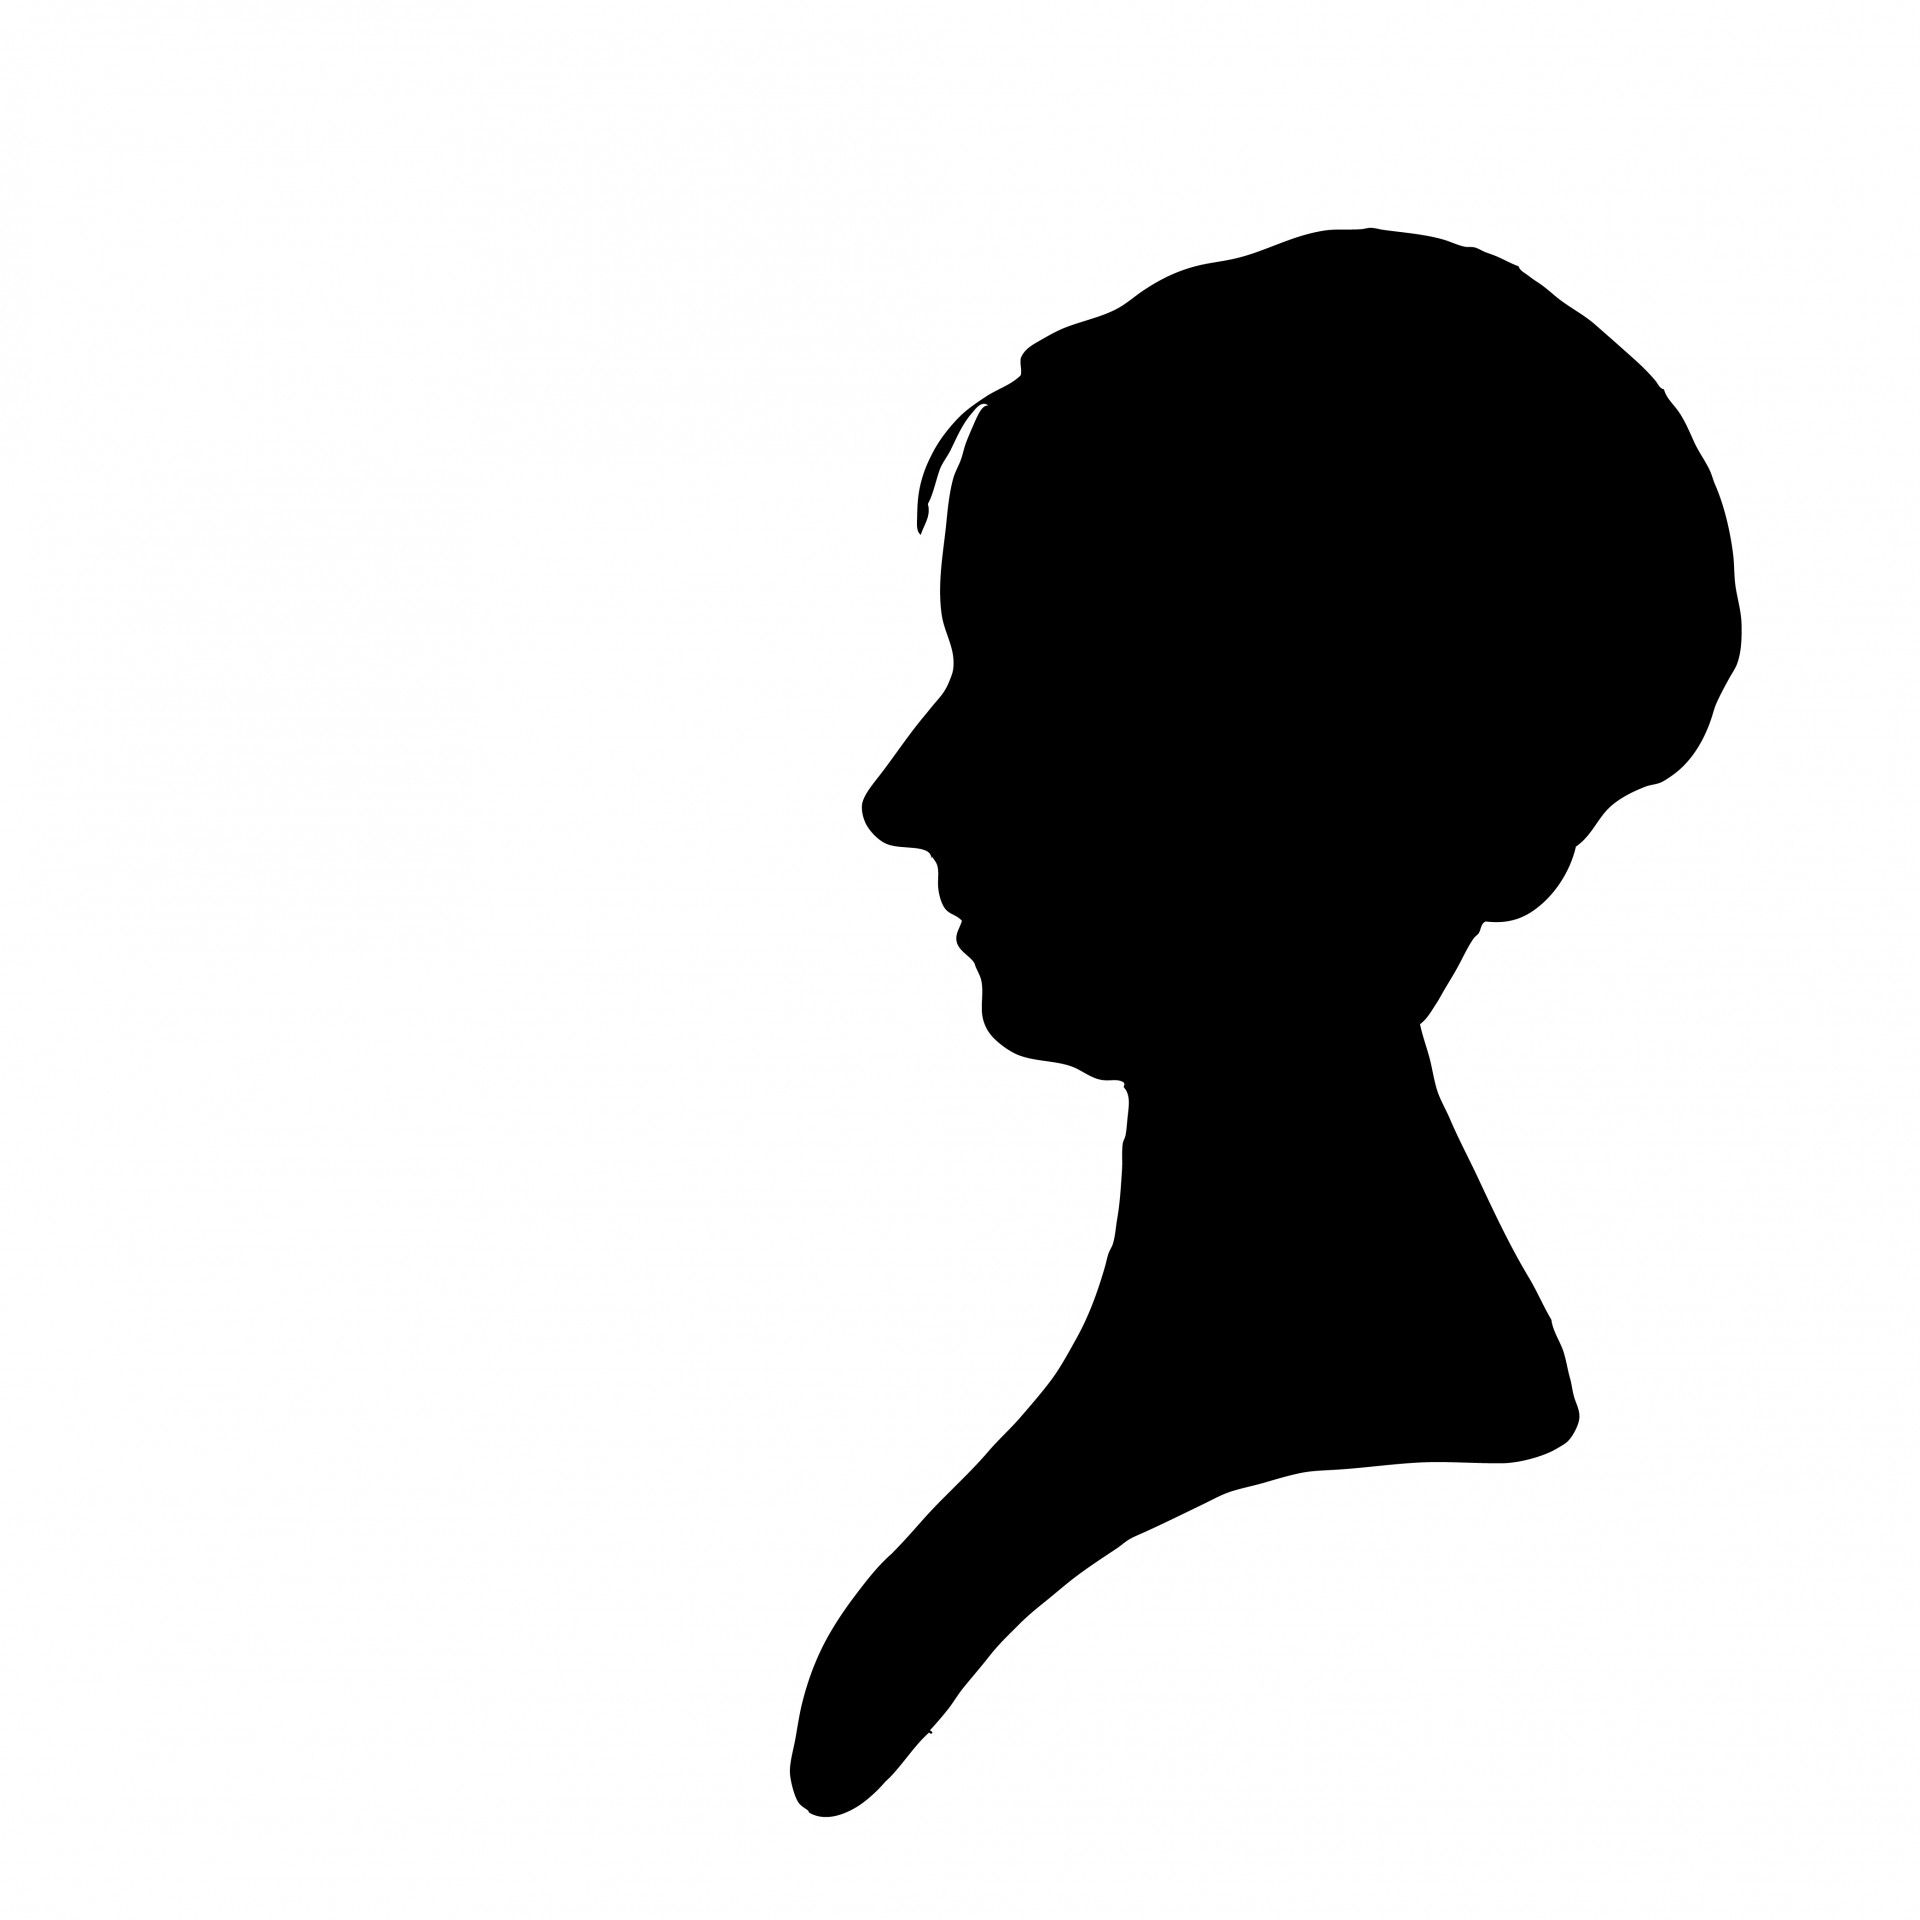 1920x1920 Woman Profile Silhouette Clipart Free Stock Photo